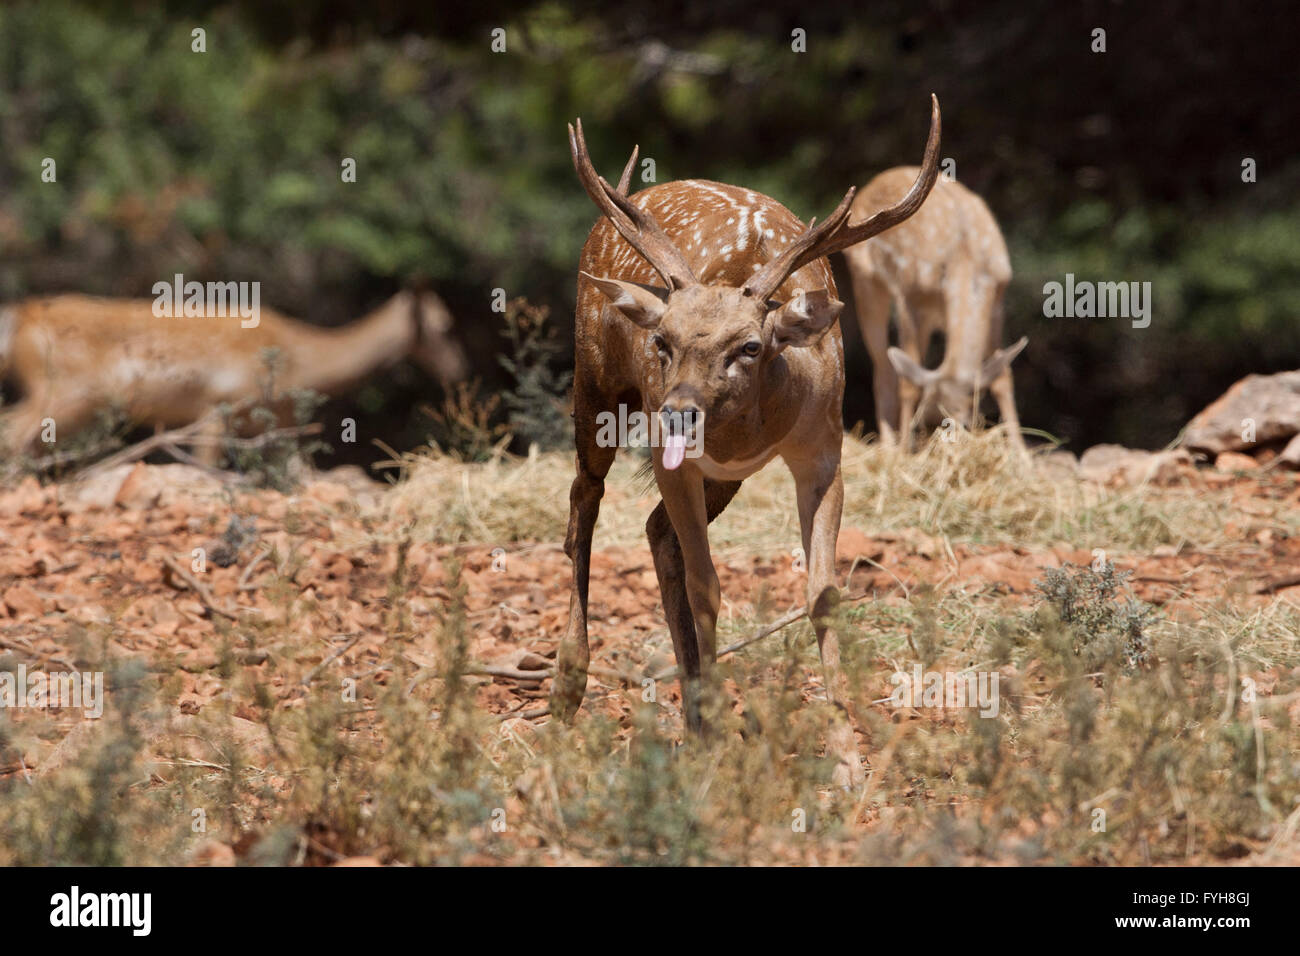 Male Mesopotamian Fallow deer (Dama mesopotamica) Photographed in Israel Carmel forest in August Stock Photo